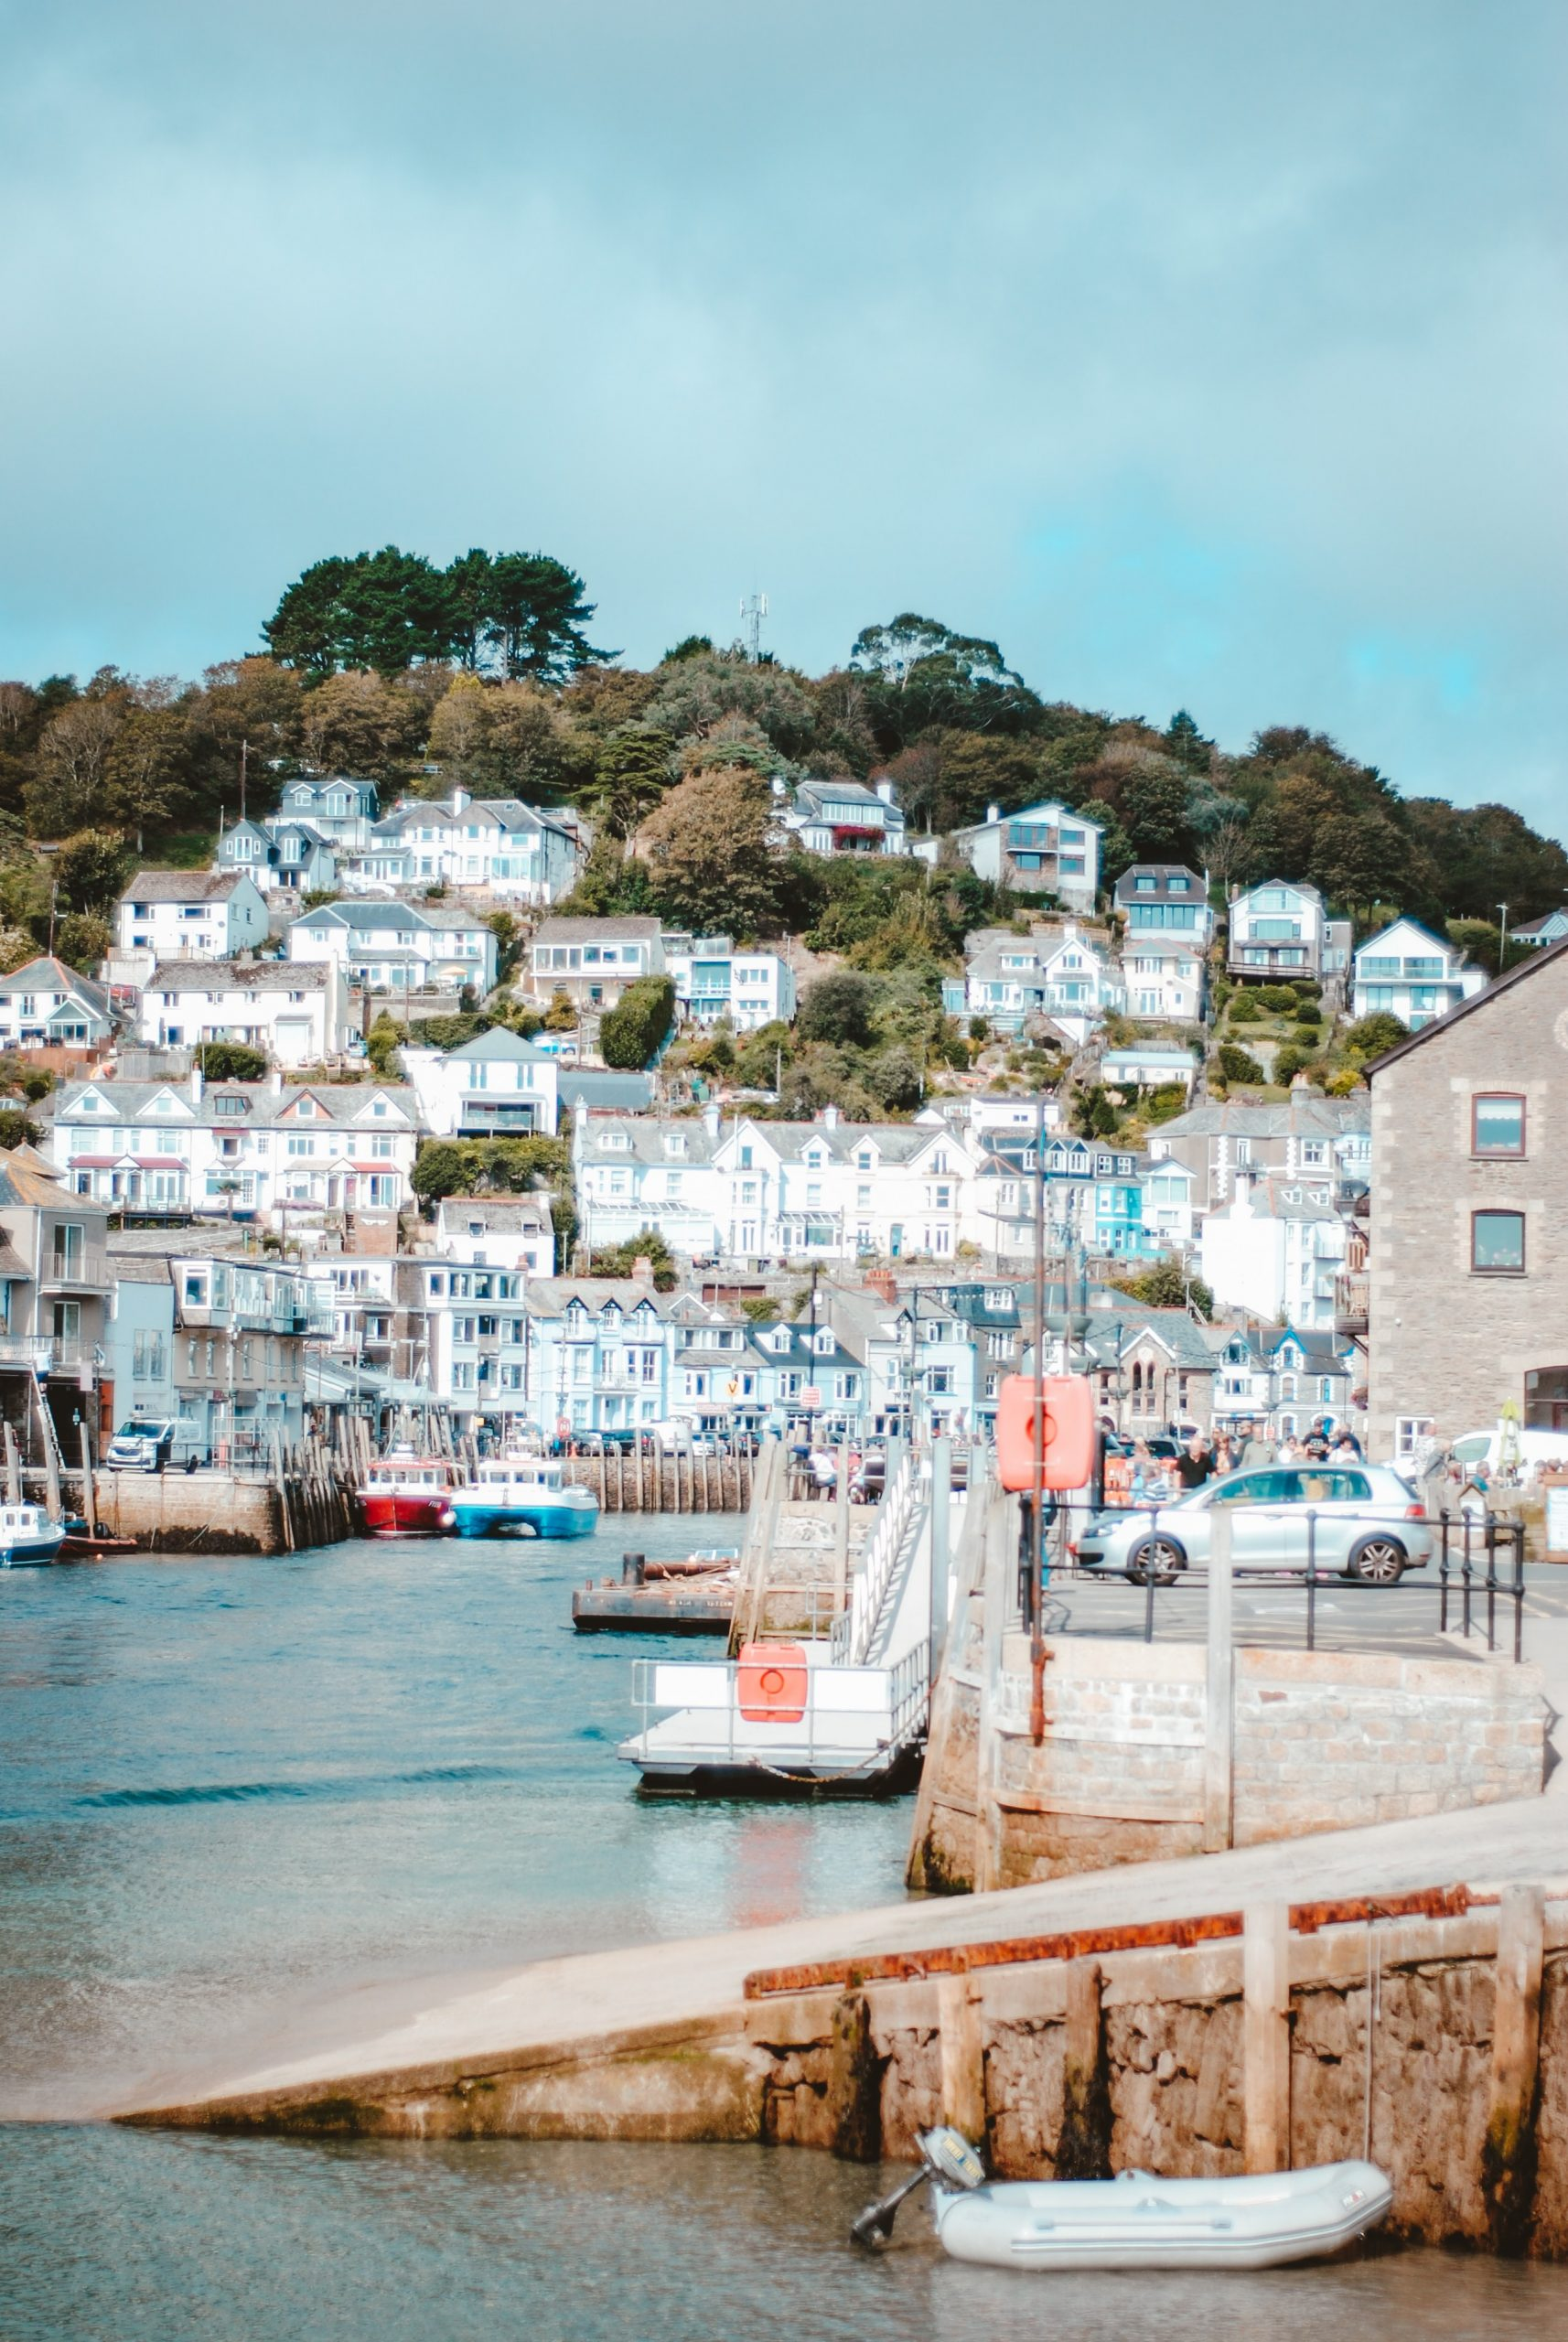 Things to do in Looe for Families